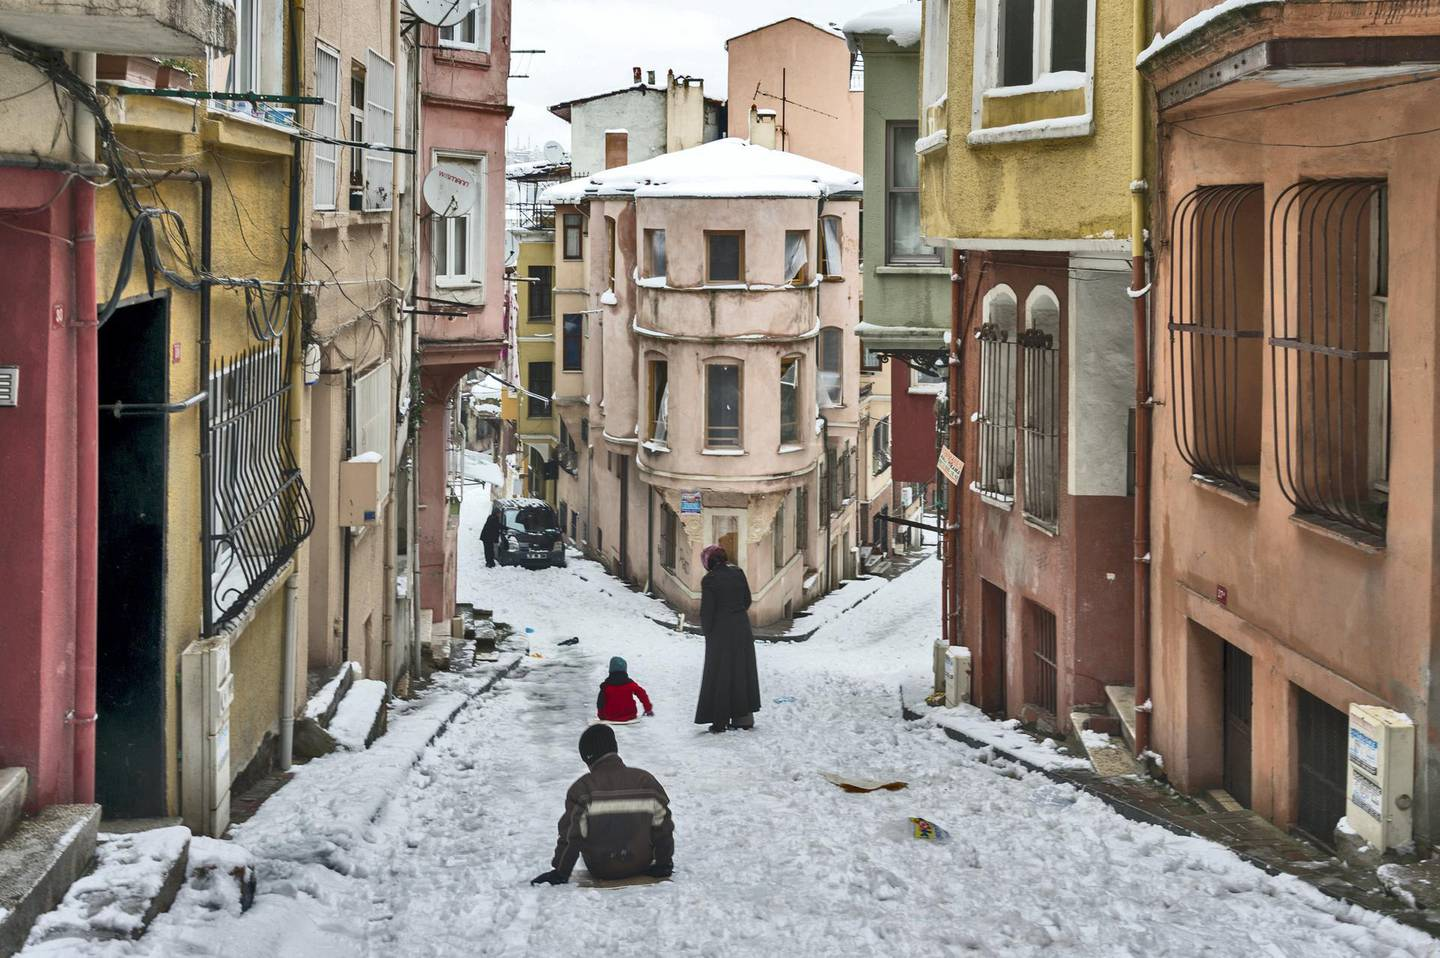 Balat is the traditional Jewish quarter in the Fatih district of Istanbul. It is located on the European side of Istanbul, in the old city on the historic peninsula, on the western bank of the Golden Horn.